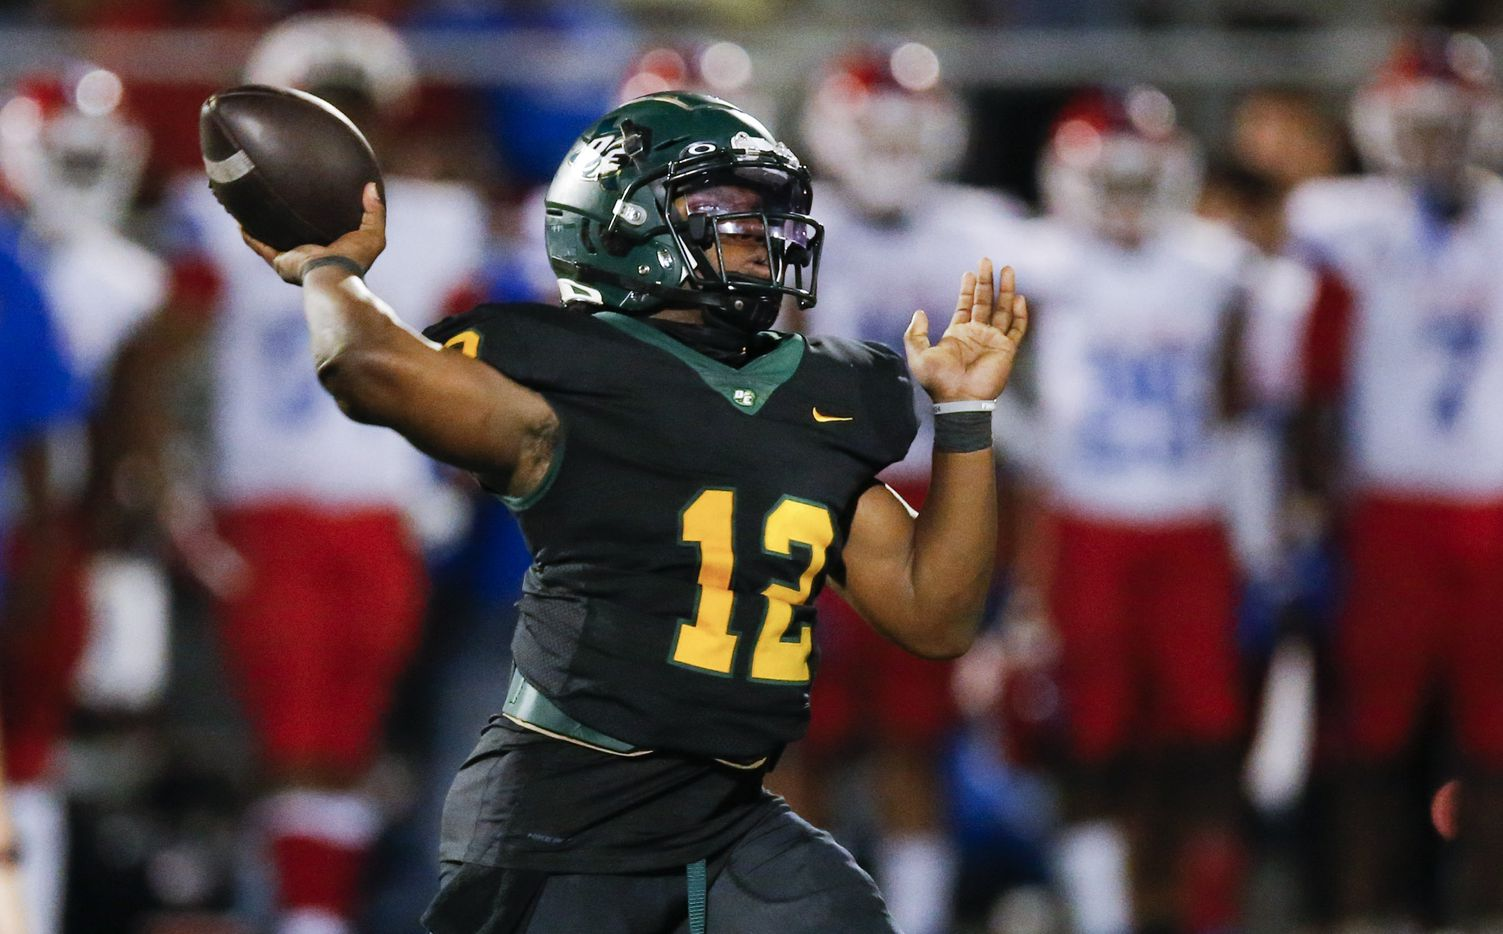 DeSoto senior quarterback throws during the second half of a high school football game against Duncanville at DeSoto High School, Friday, September 17, 2021. Duncanville won 42-21. (Brandon Wade/Special Contributor)